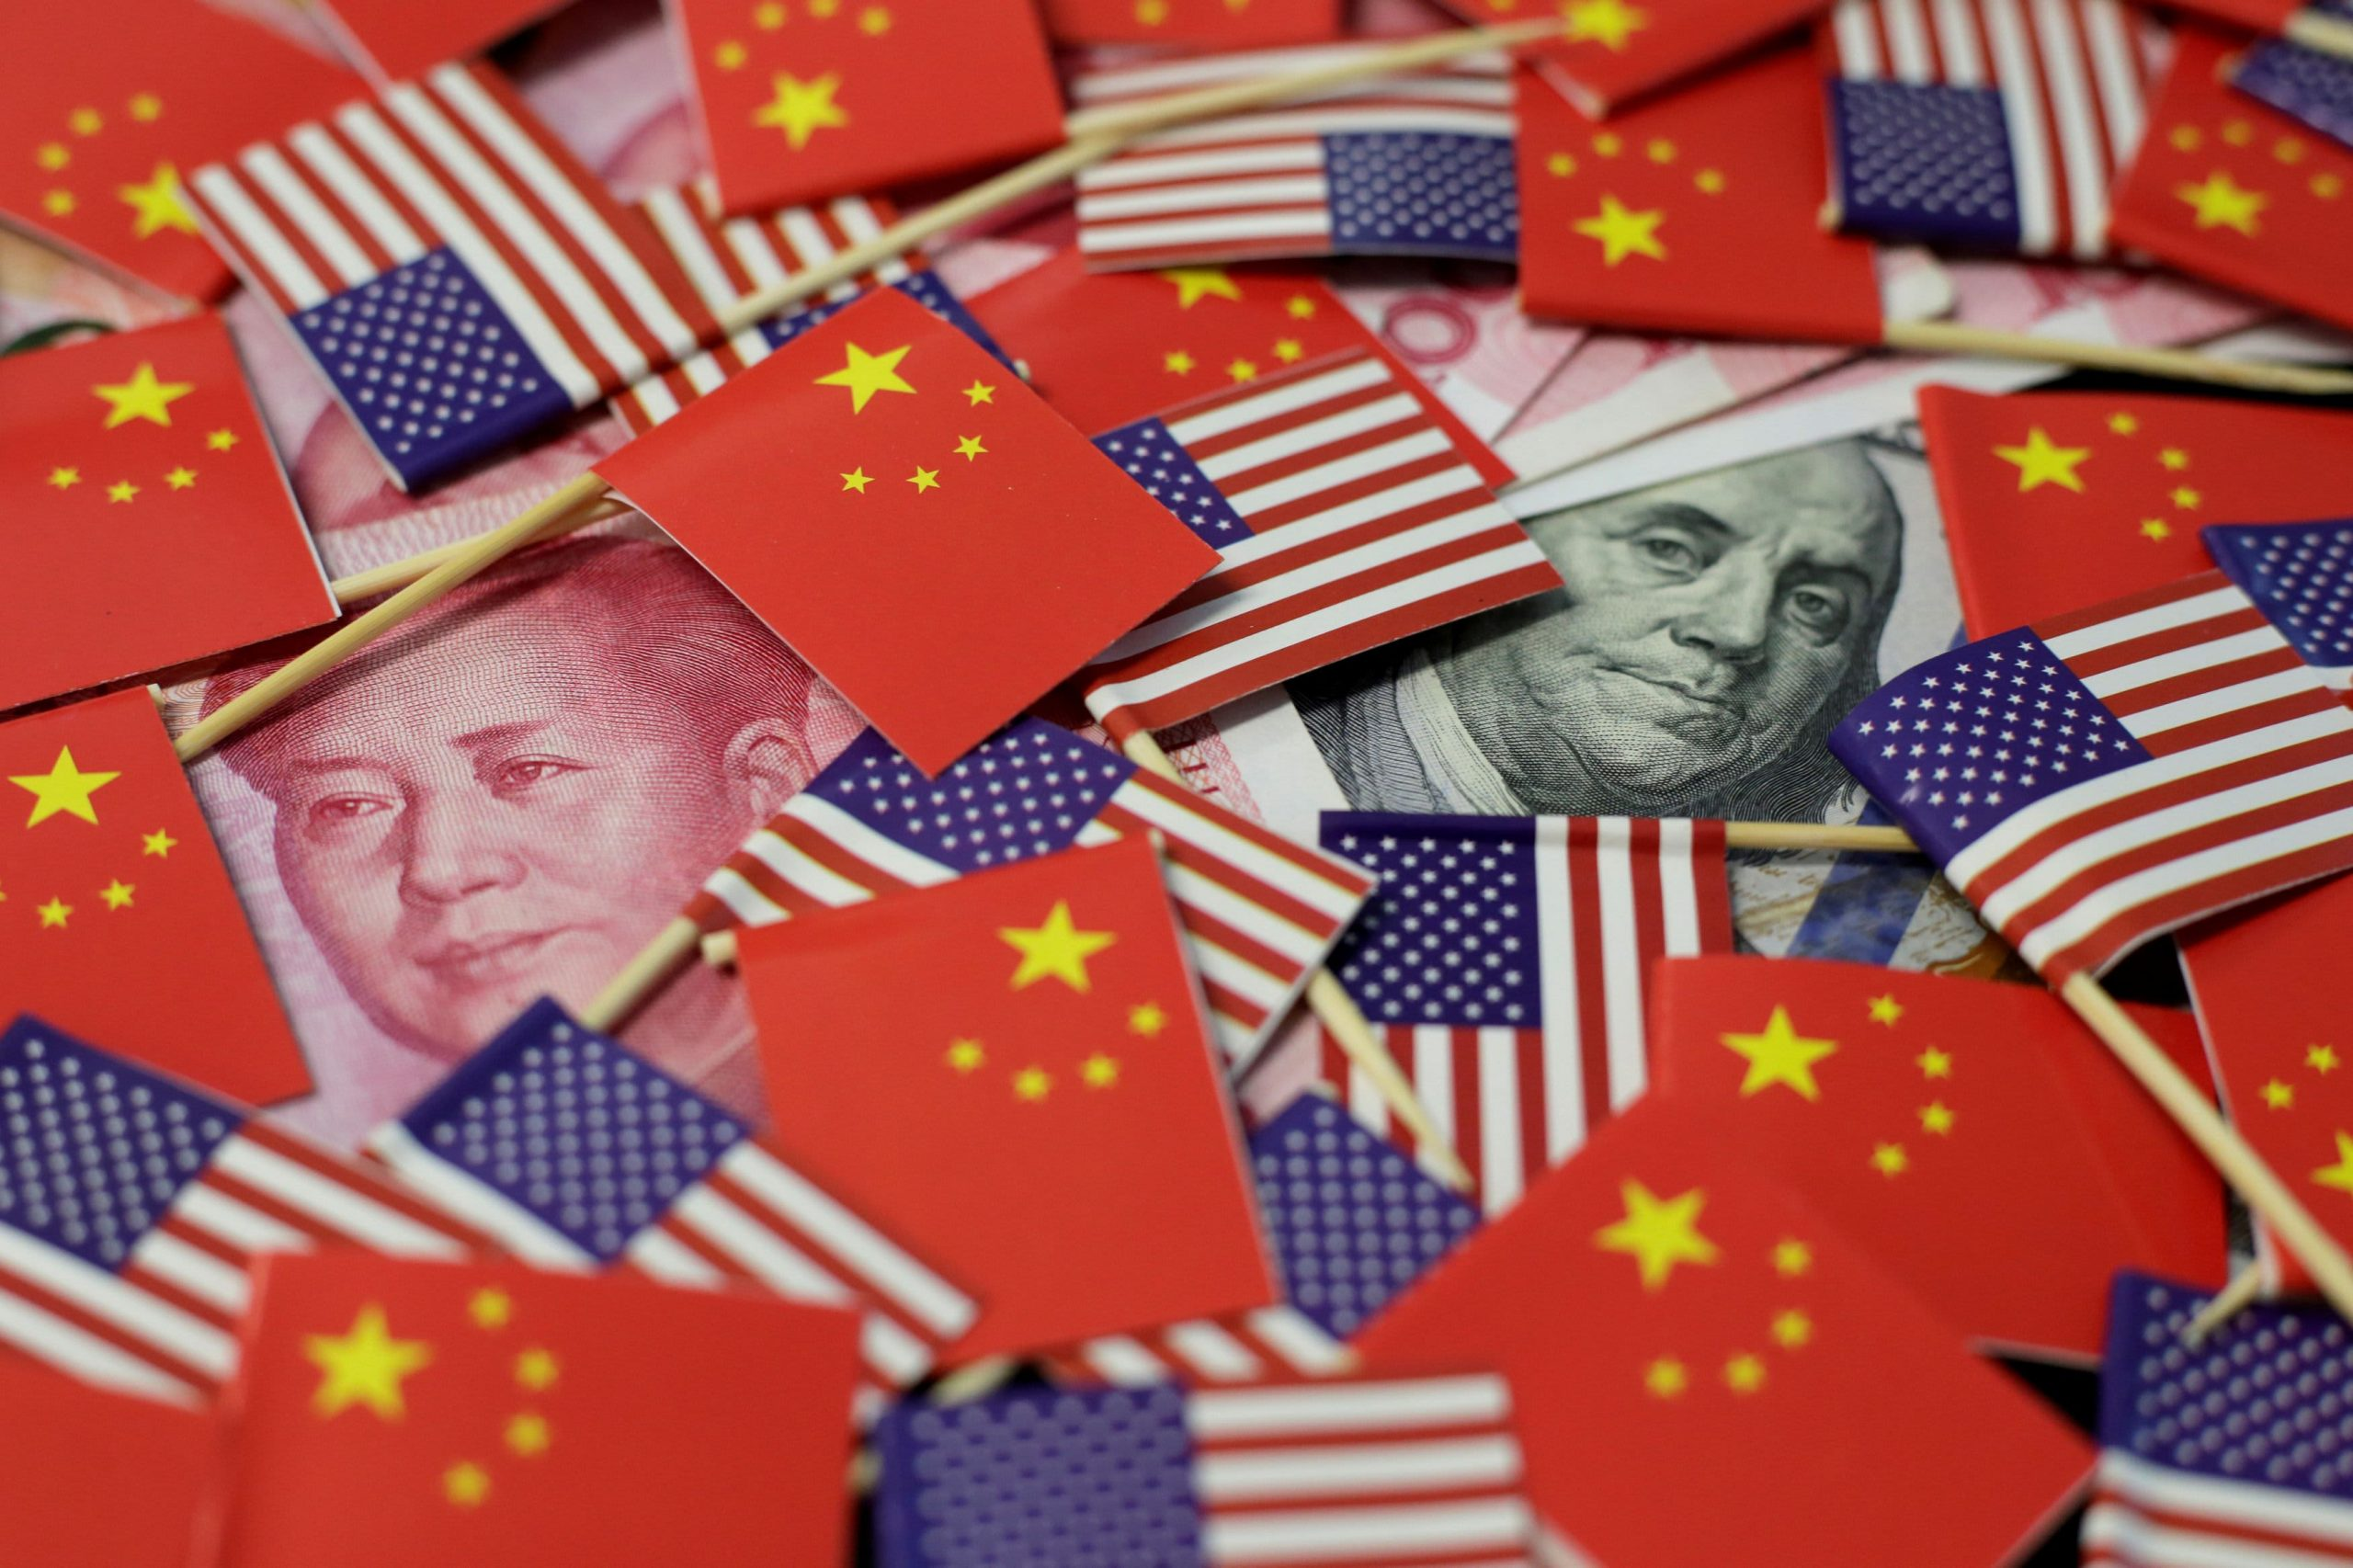 Americans are still interested in putting their money in China